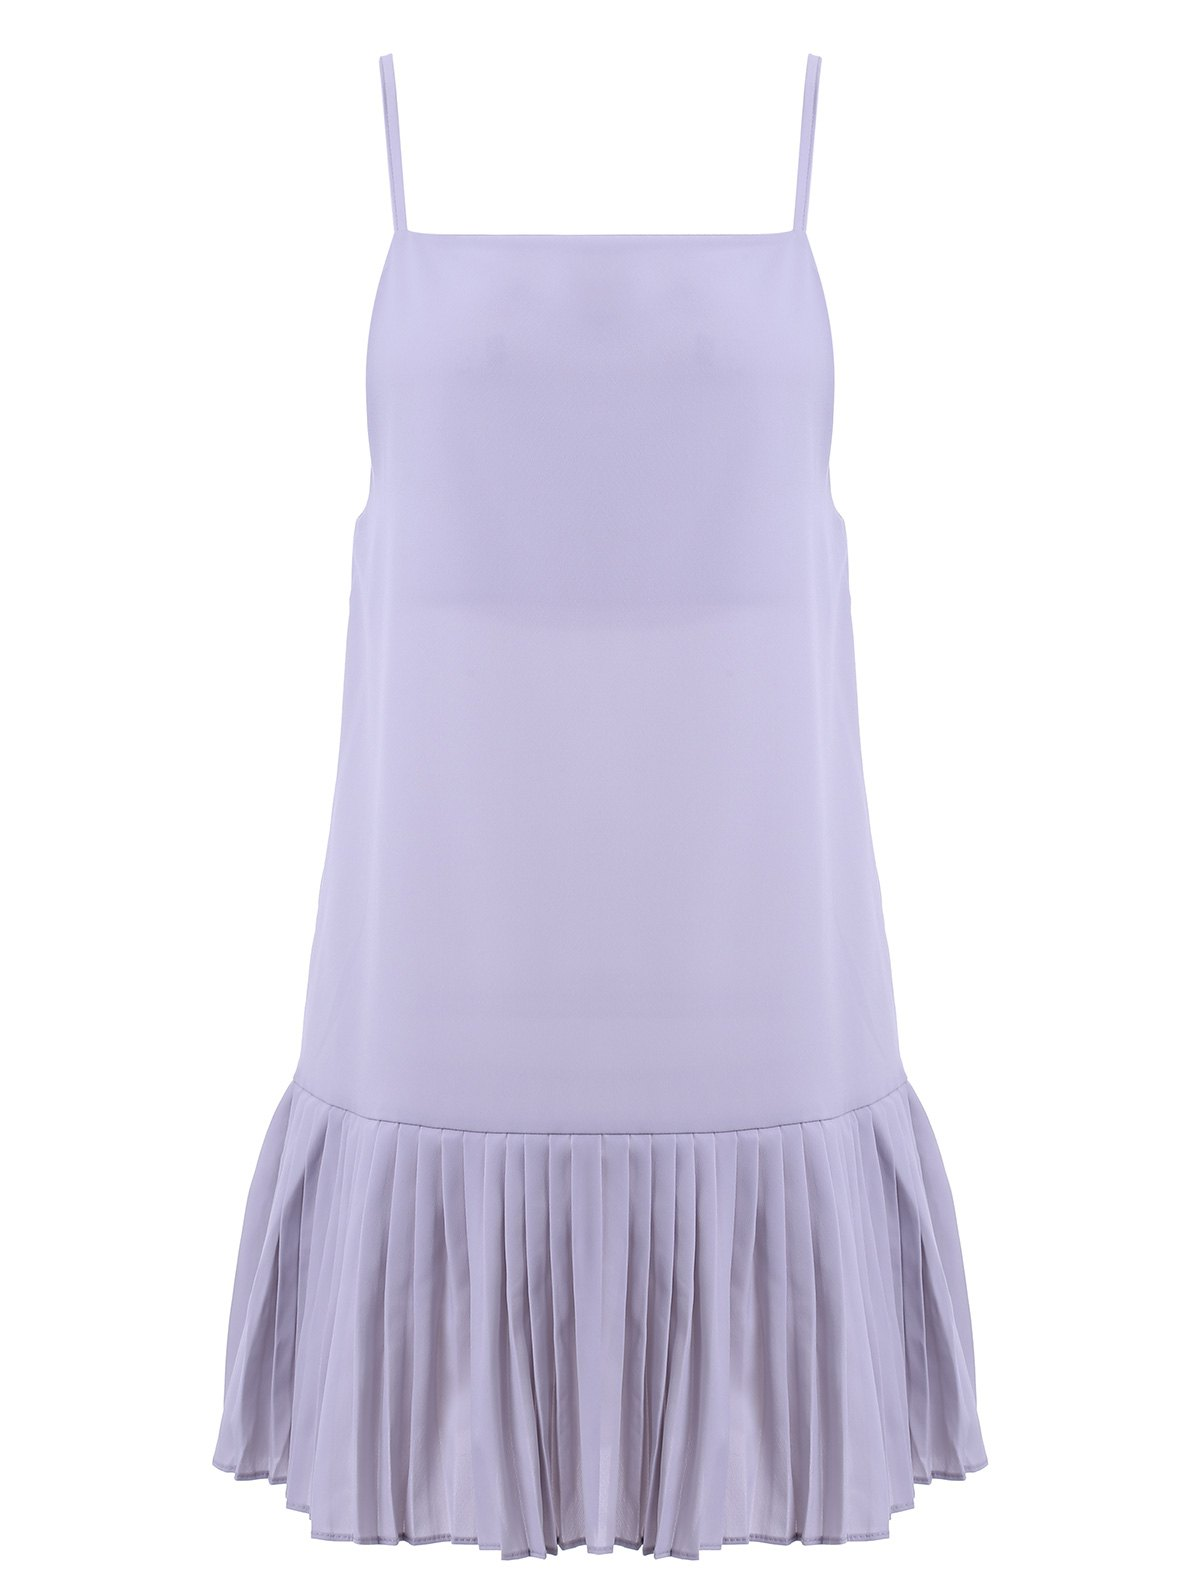 Simple Design Women's Solid Color Spaghetti Strap Pleated Dress - LIGHT GRAY ONE SIZE(FIT SIZE XS TO M)